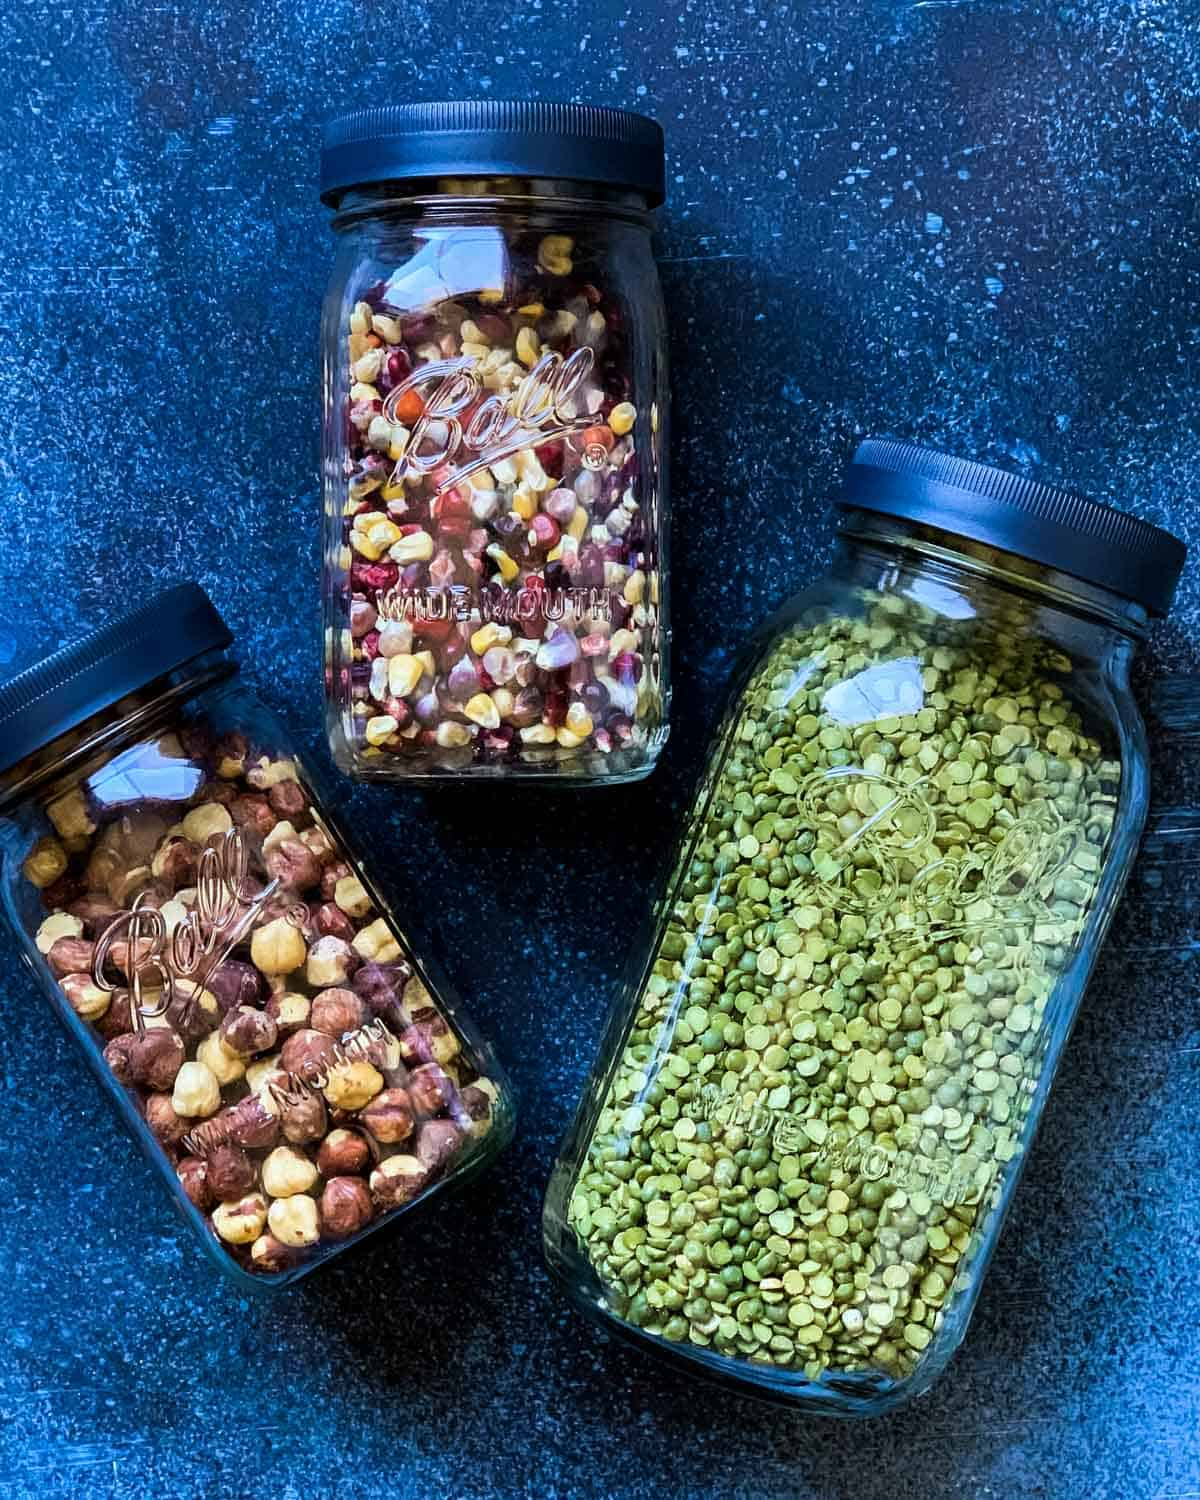 three ball jars filled with popcorn, nuts, and beans